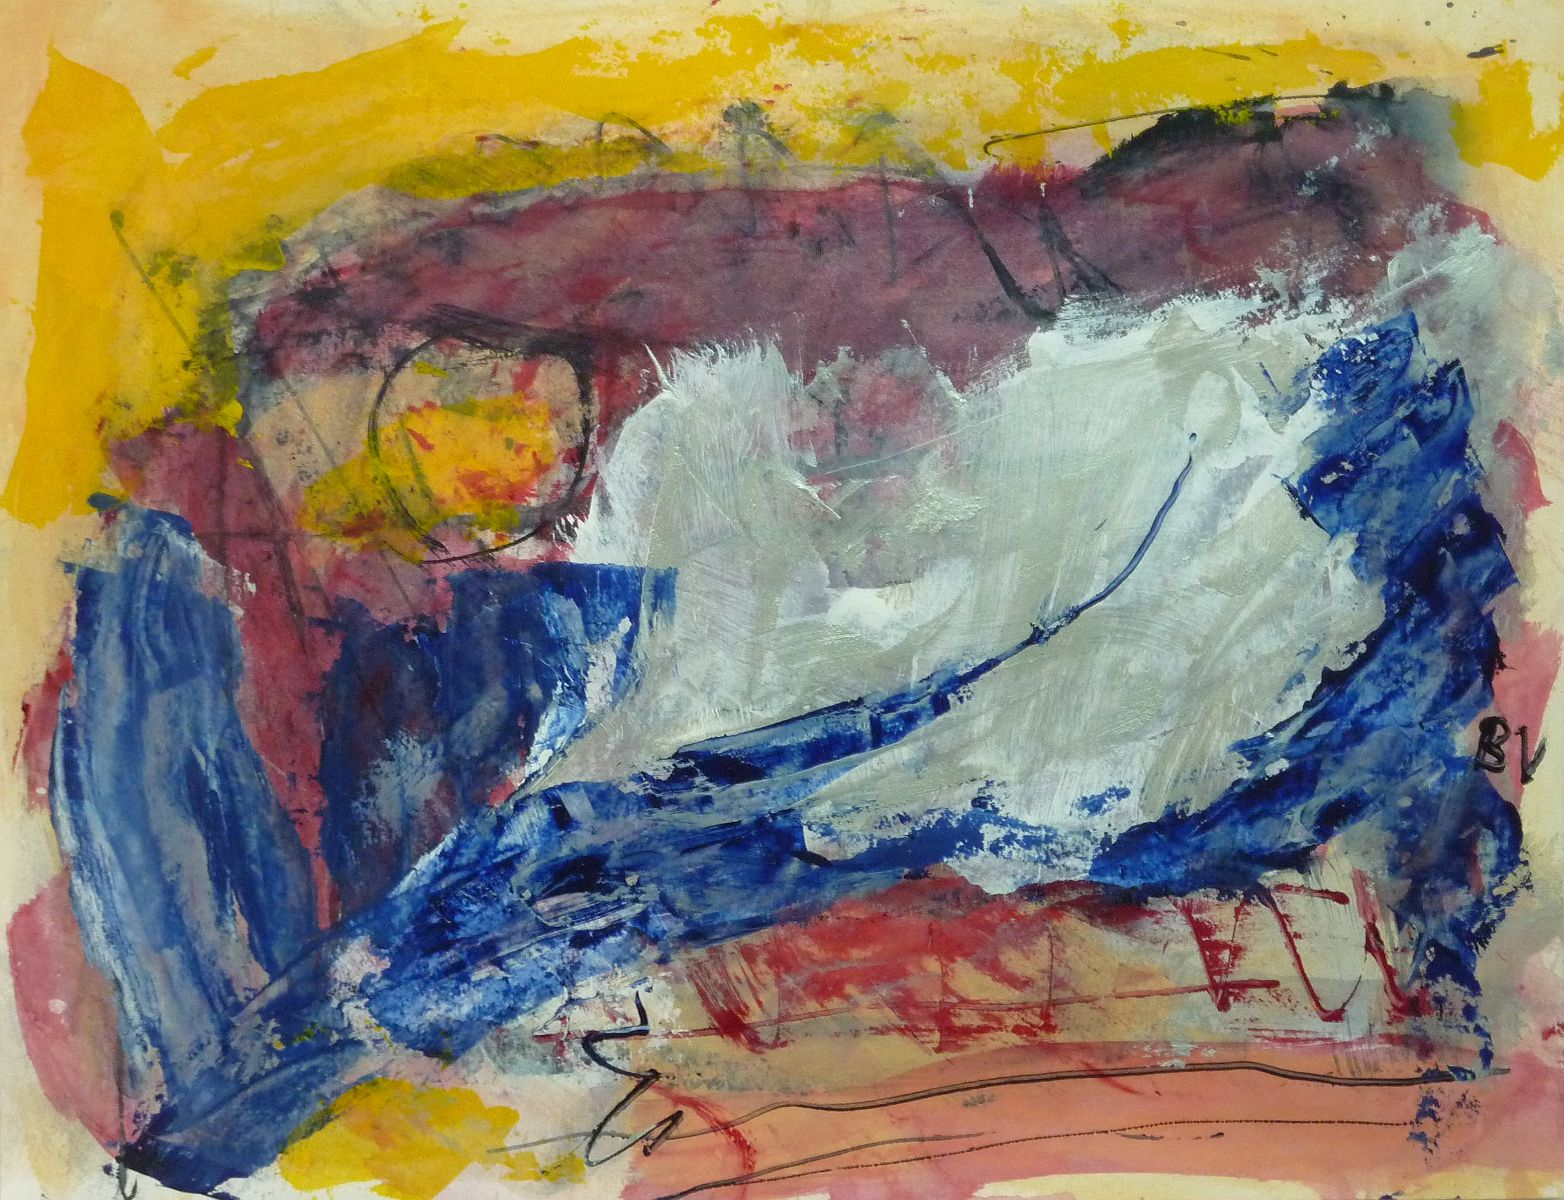 Lyrisch abstract – acryl op papier – 2013